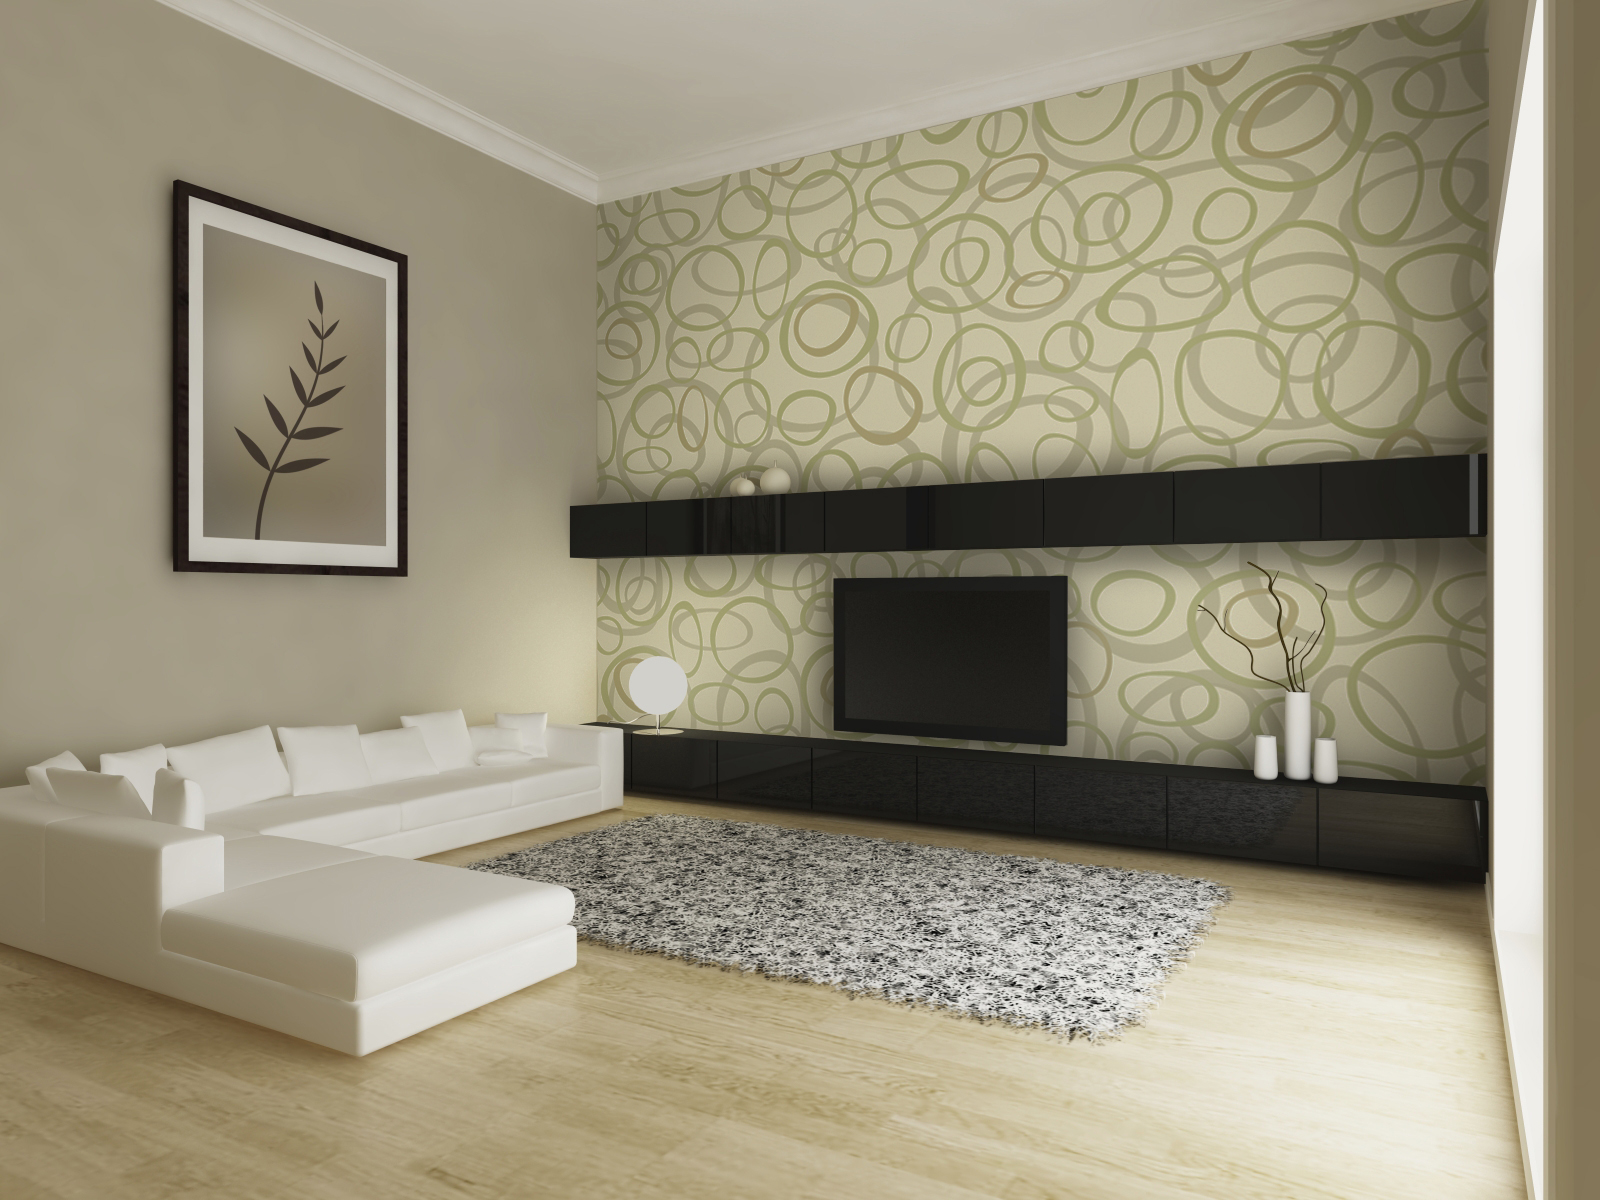 Wallpaper interior design 1600x1200